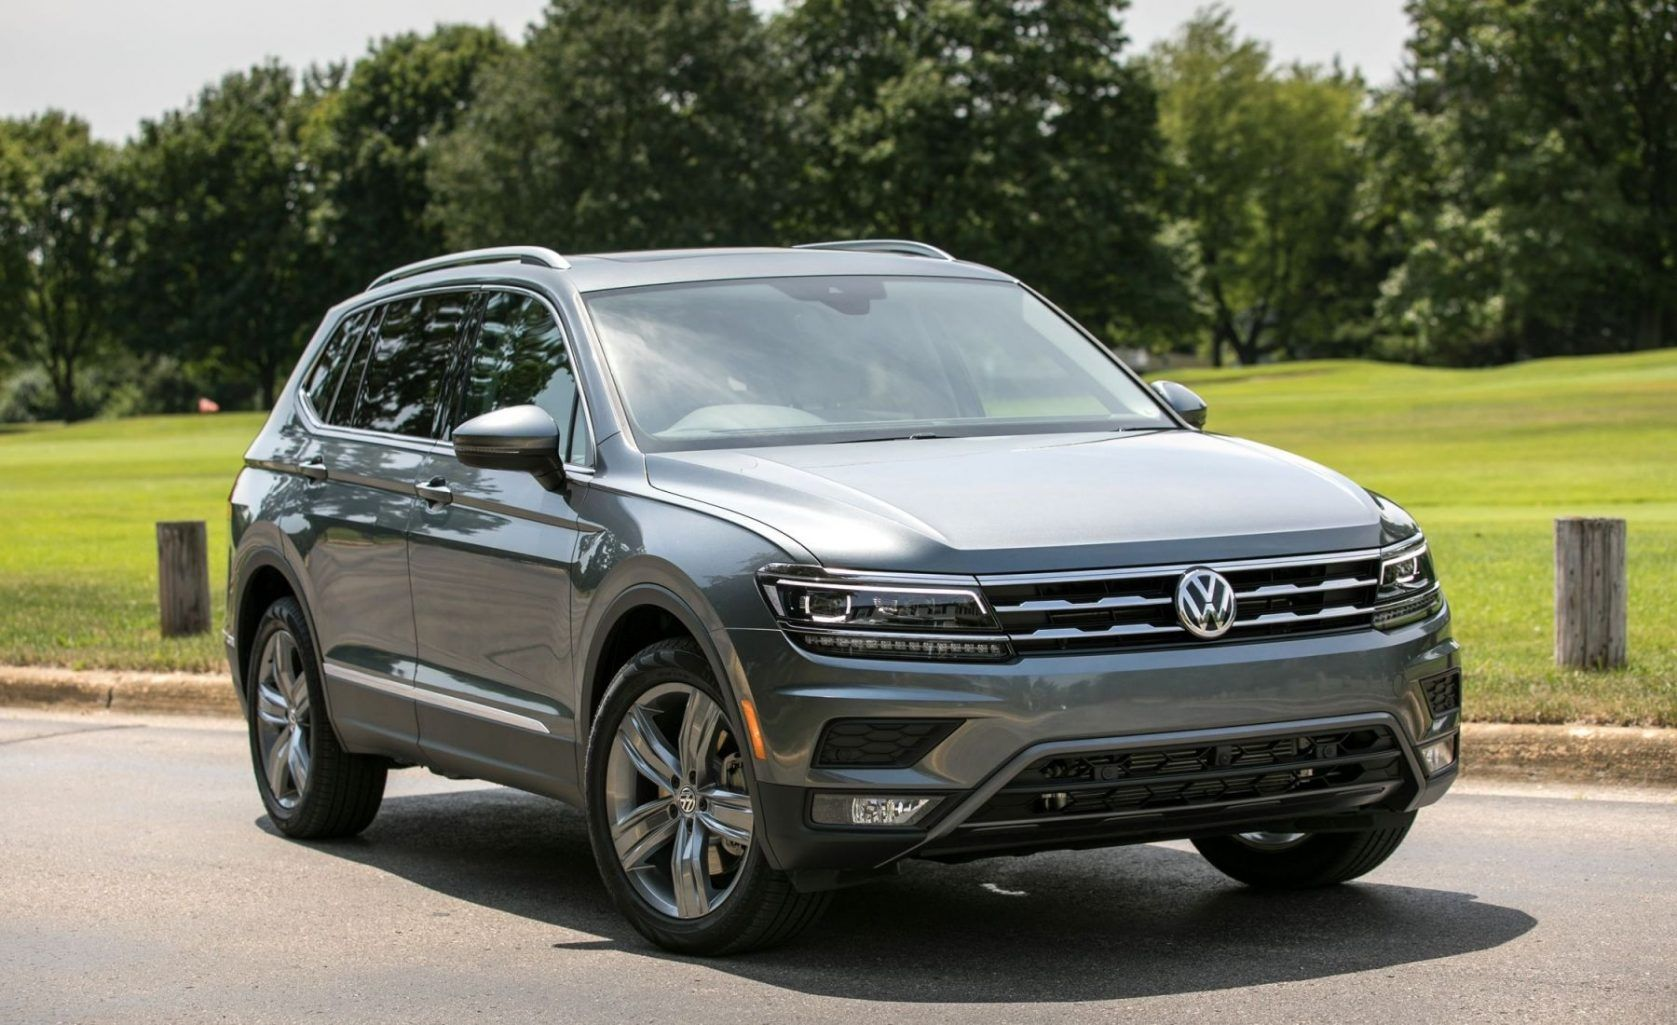 The Only Volkswagen S Vehicle That Didn T Feel The Sales Crush After Huge Emission Scandal Is Tiguan The Compact Crossover Has Actually Simply Gone Into The Ne